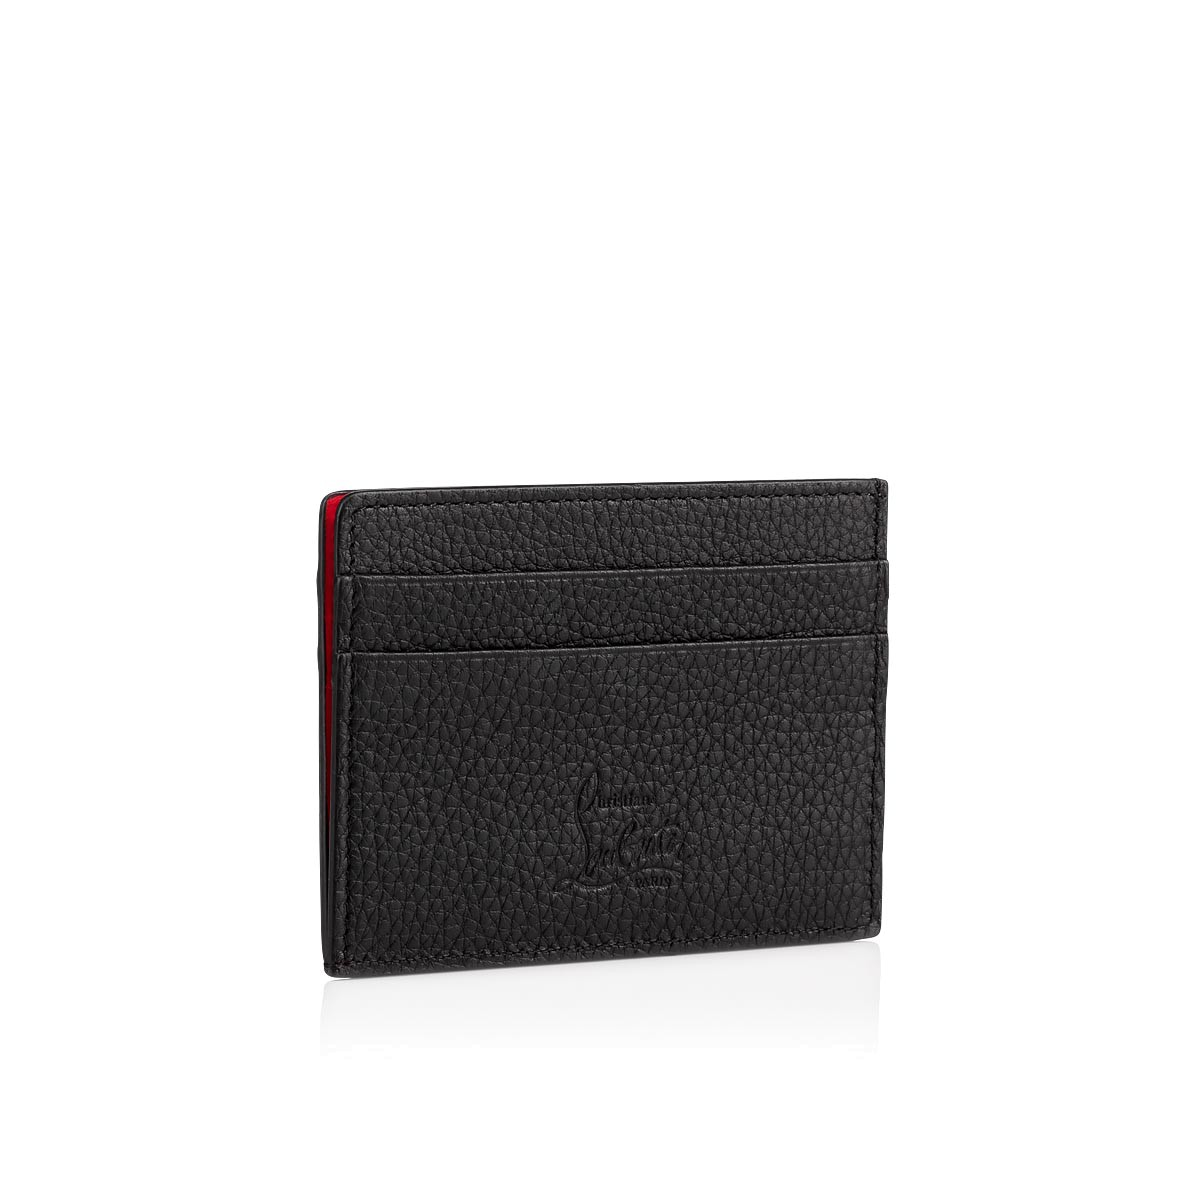 Small Leather Goods - Kios Card Holder - Christian Louboutin